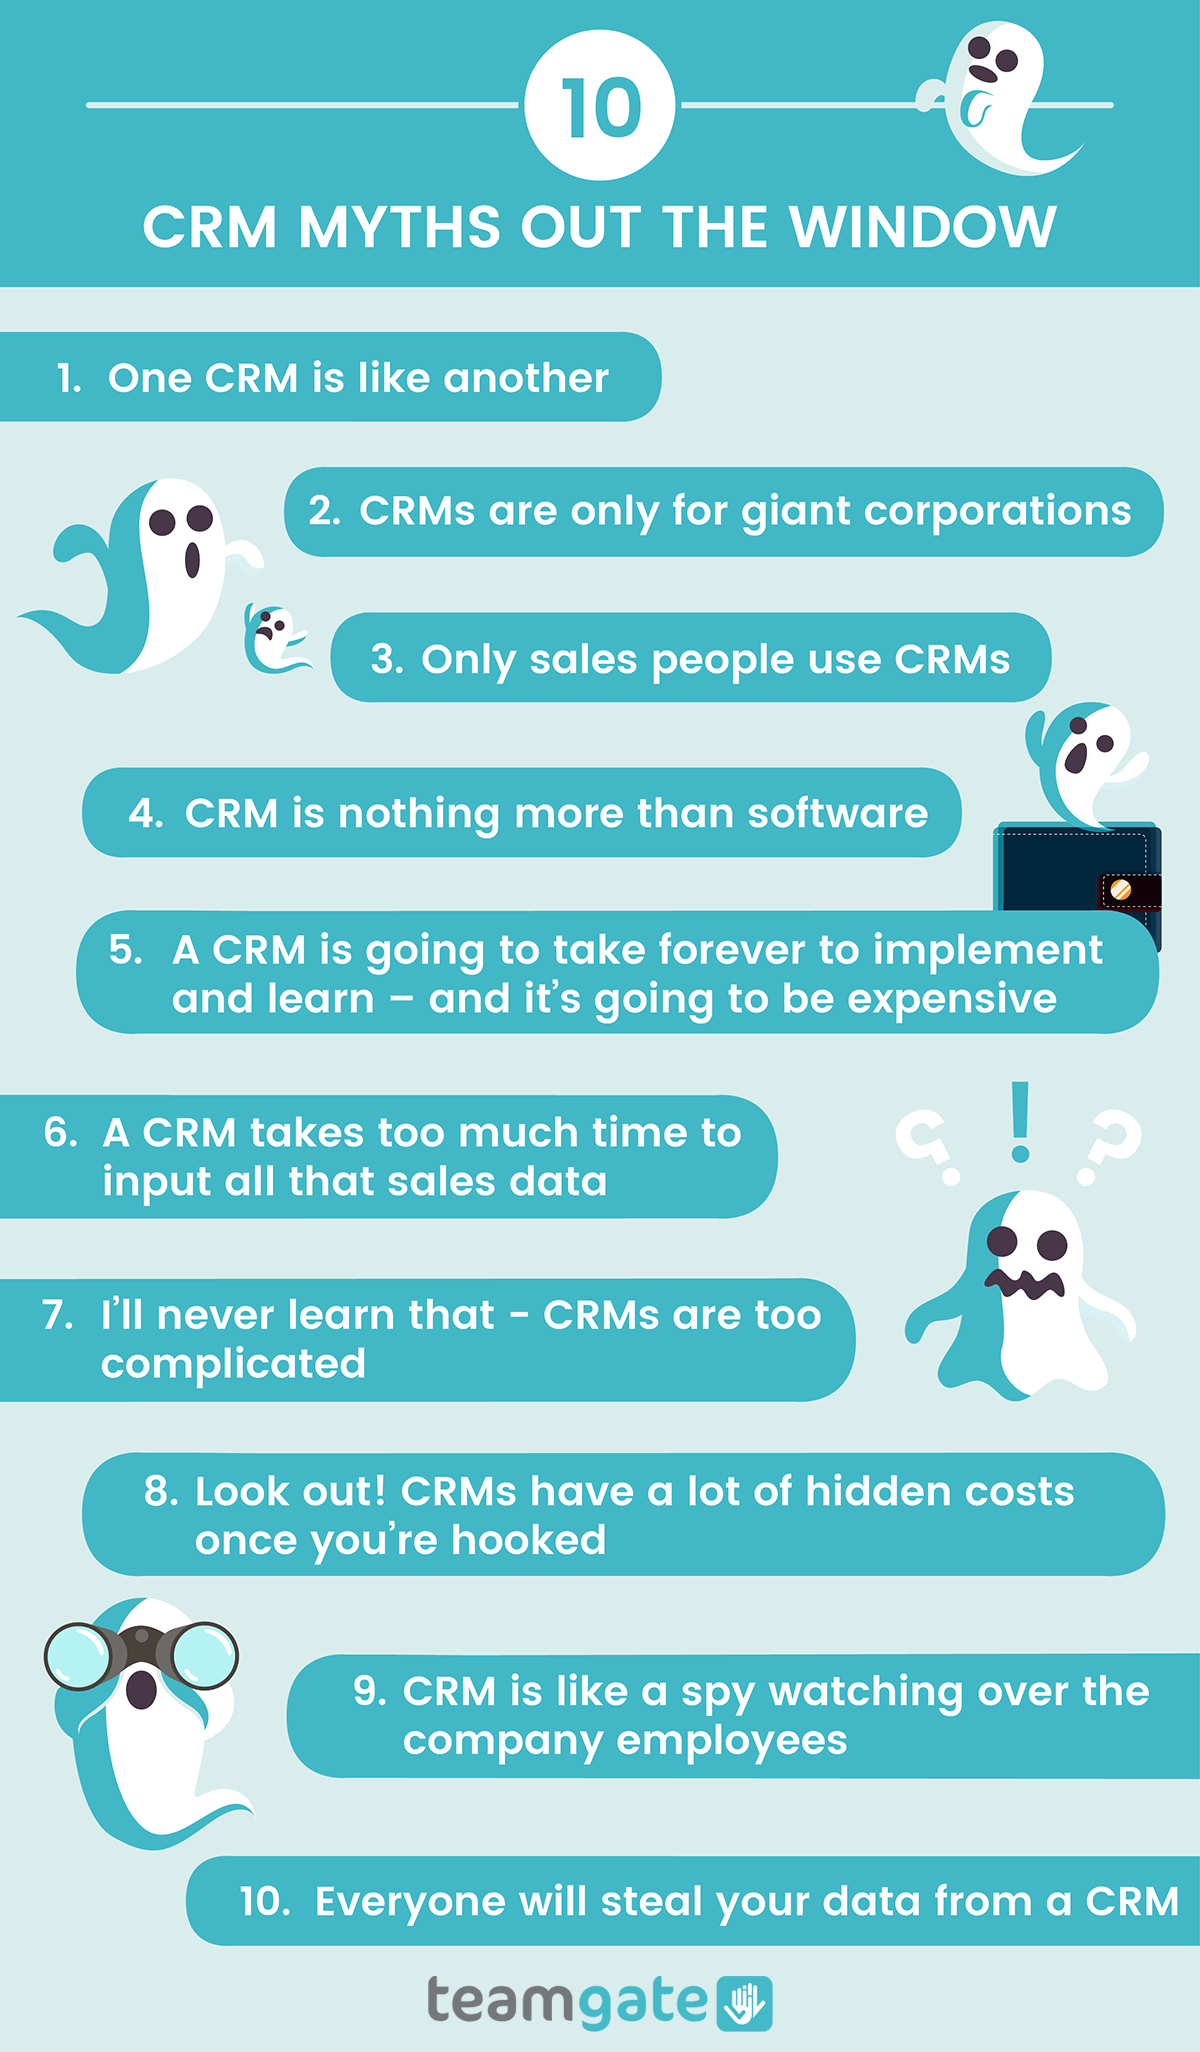 CRM Myths Debunked INfographic by Teamgate